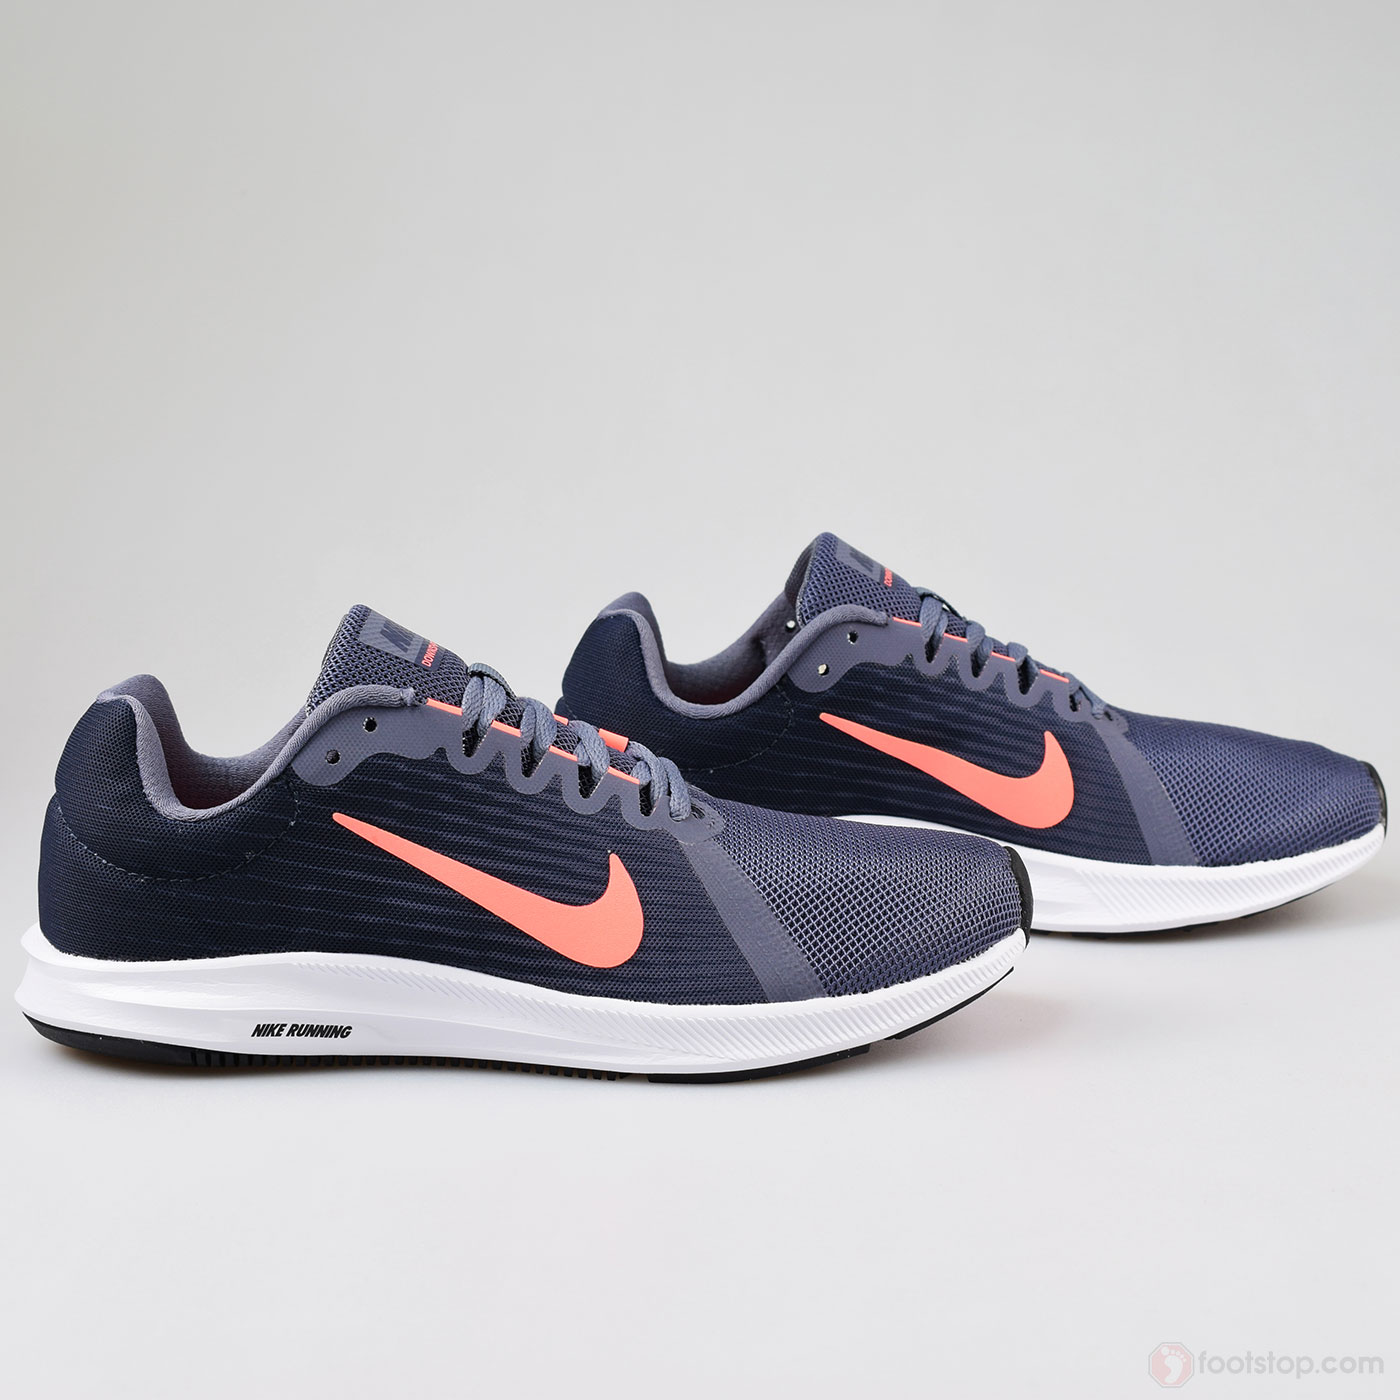 4dc0ad42ed987 Home Mujer Zapatillas de running mujer. nike wmns downshifter 8 (908994-005)